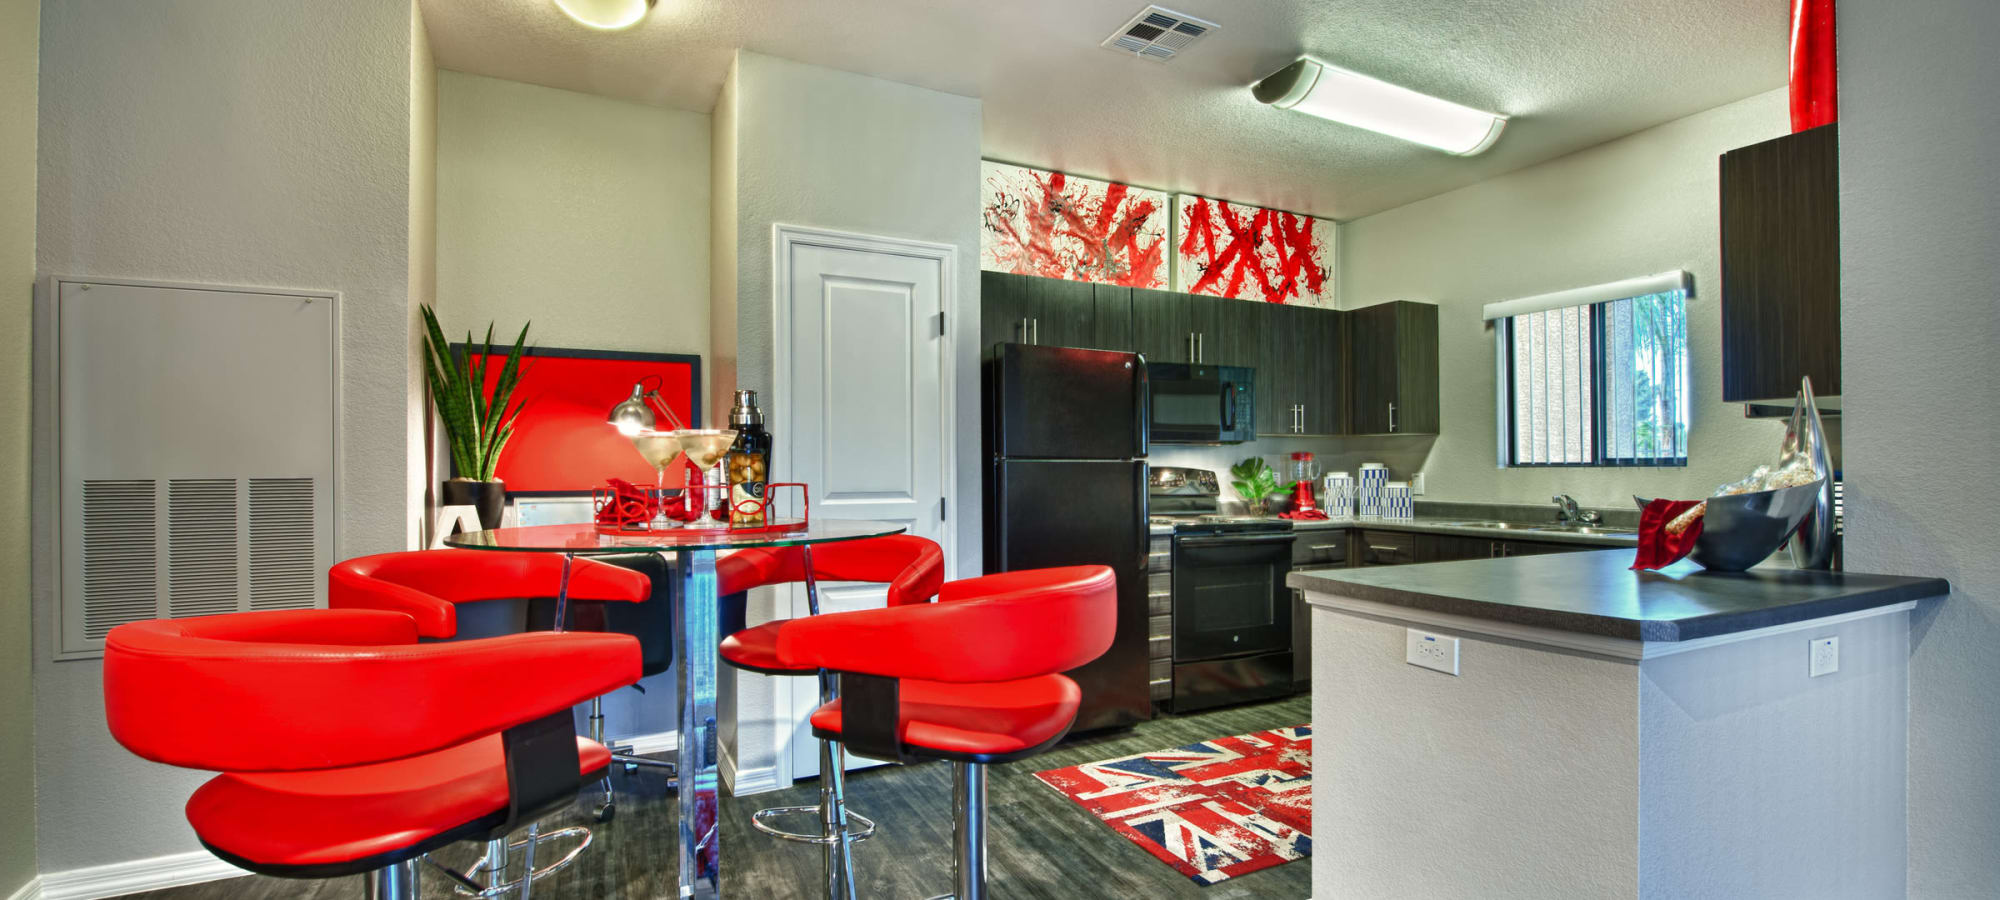 An apartment dining room next to the kitchen at Avenue 25 Apartments in Phoenix, Arizona